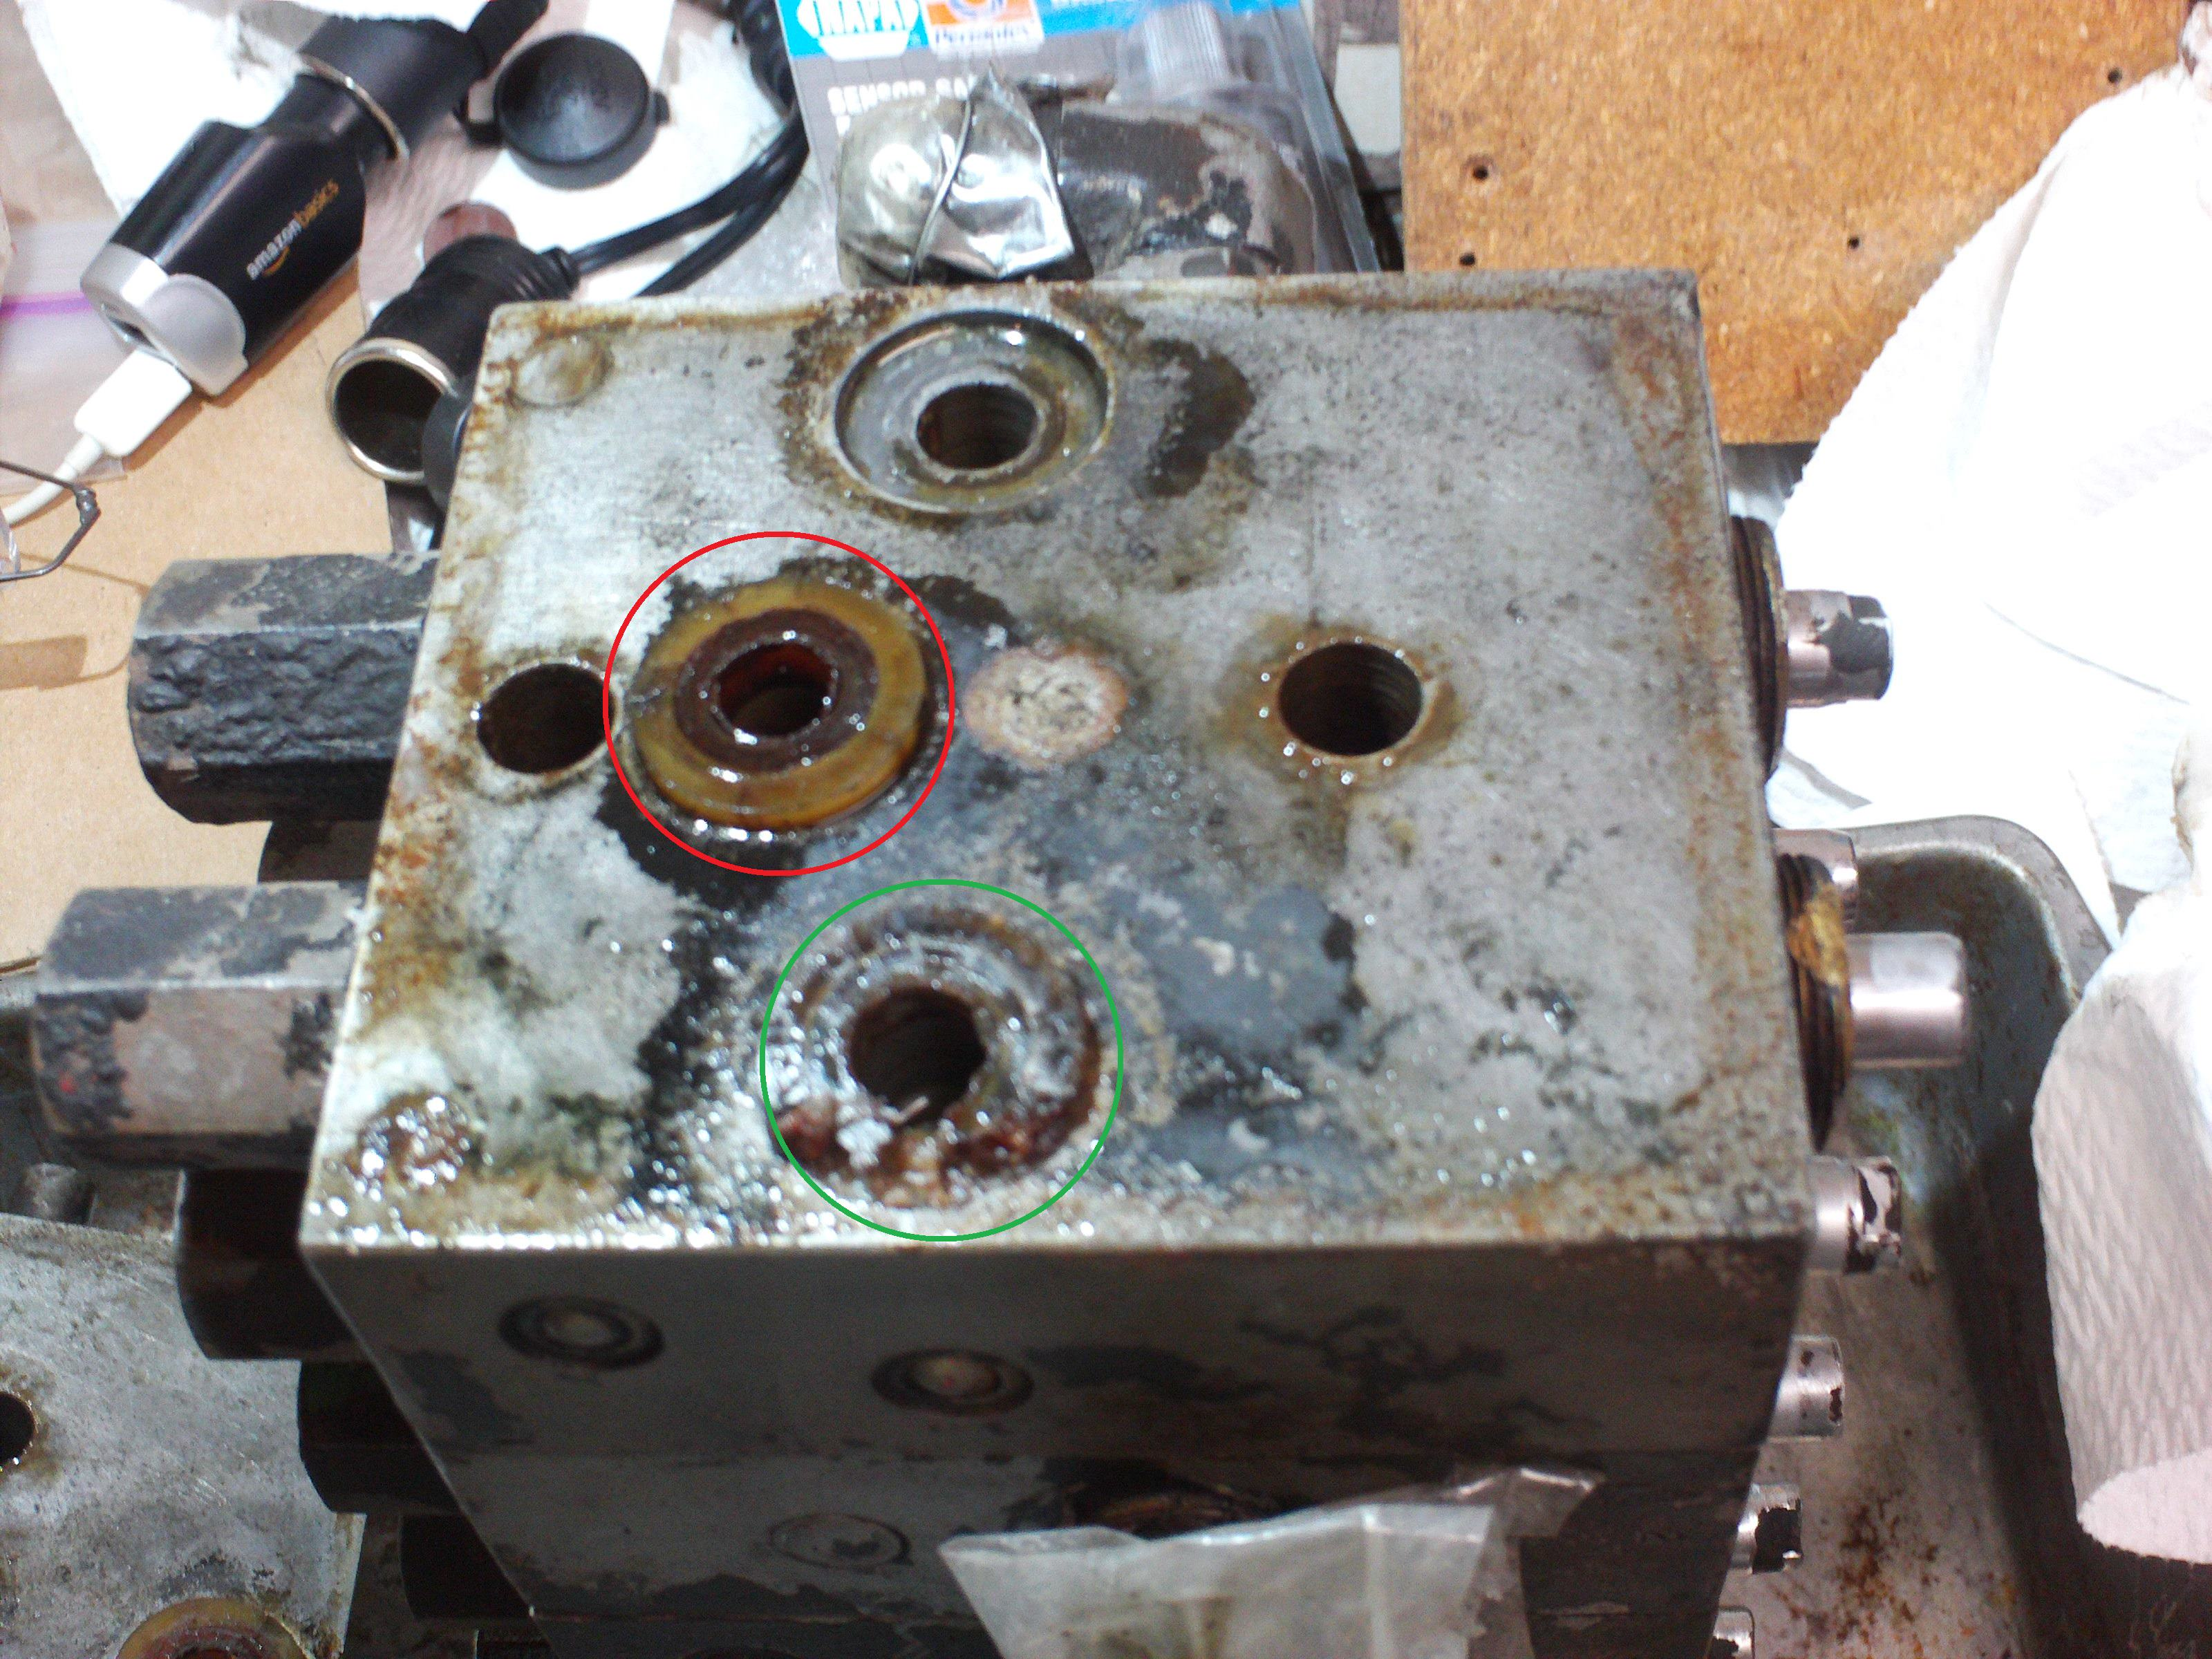 Valve bank upon removal